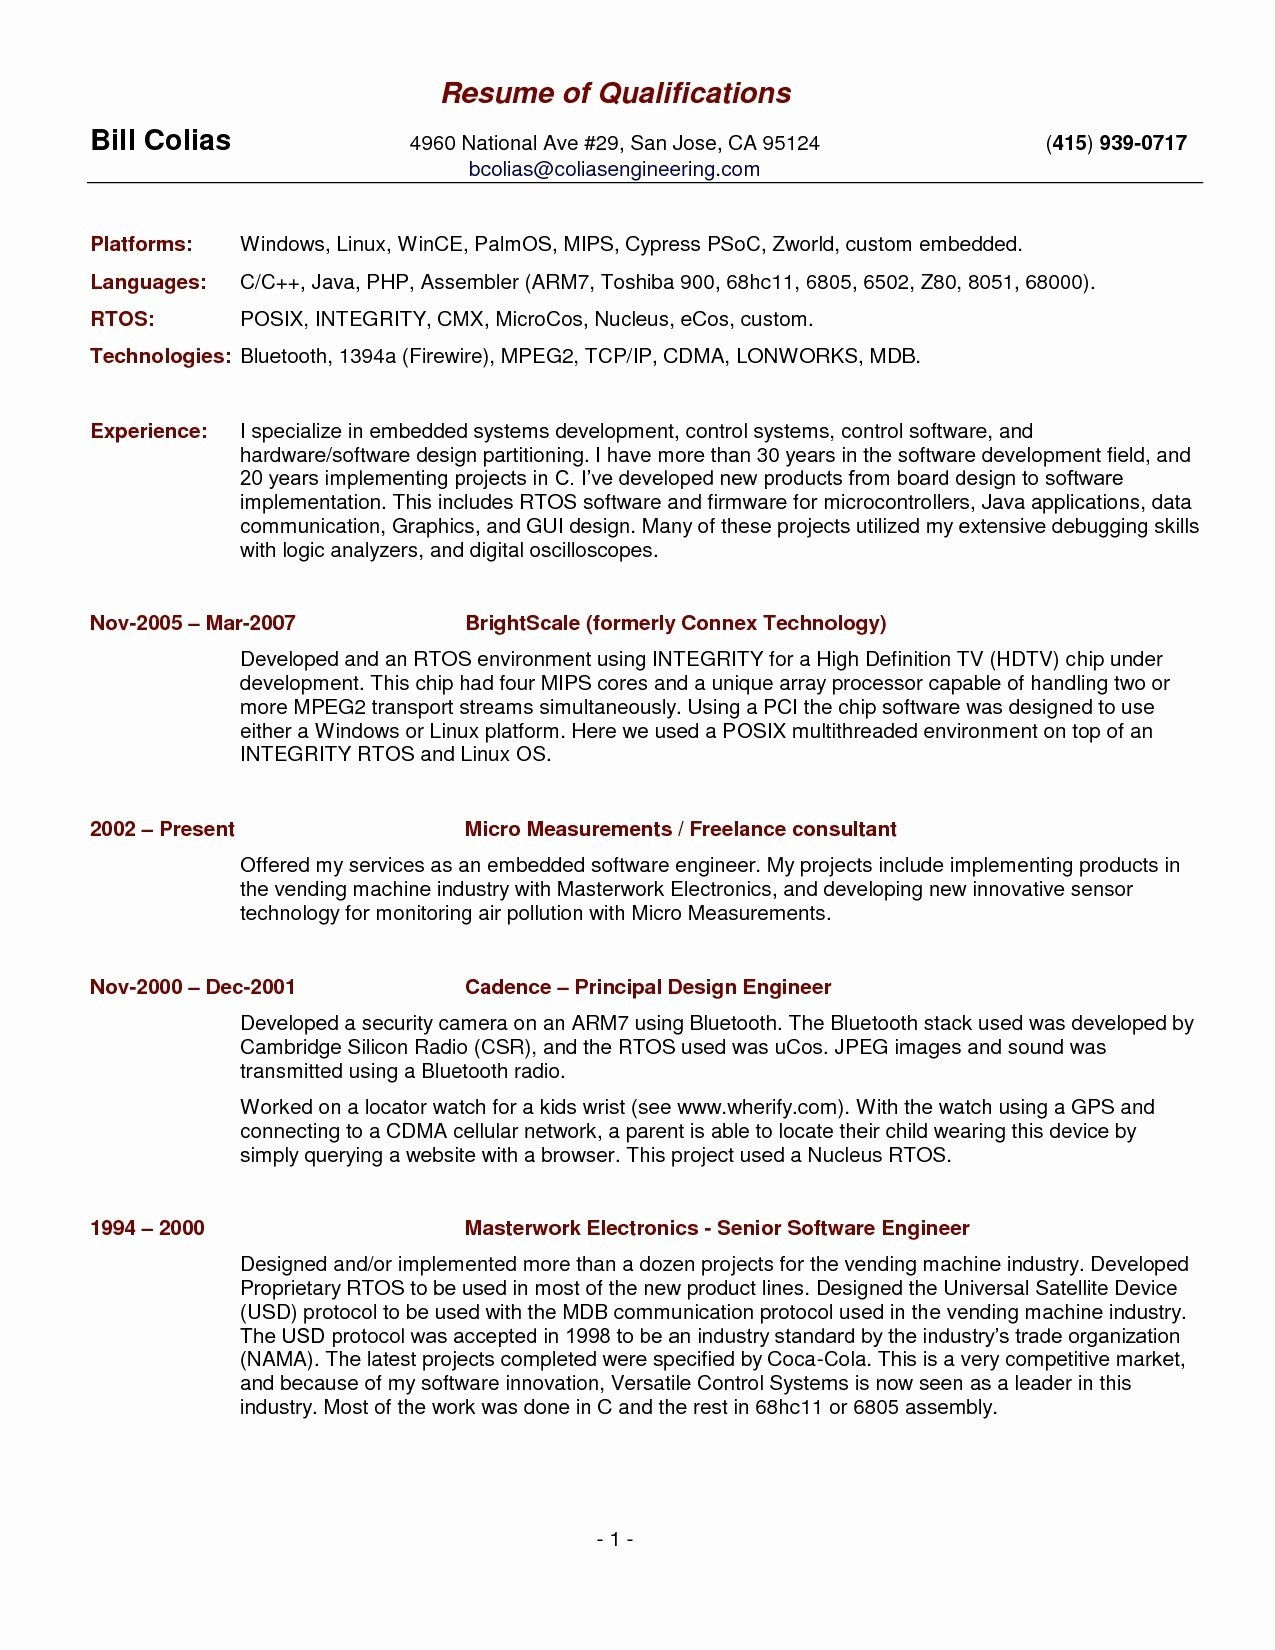 Resume Template Purdue - Resume Personal Statement Inspirational Unique Examples Resumes